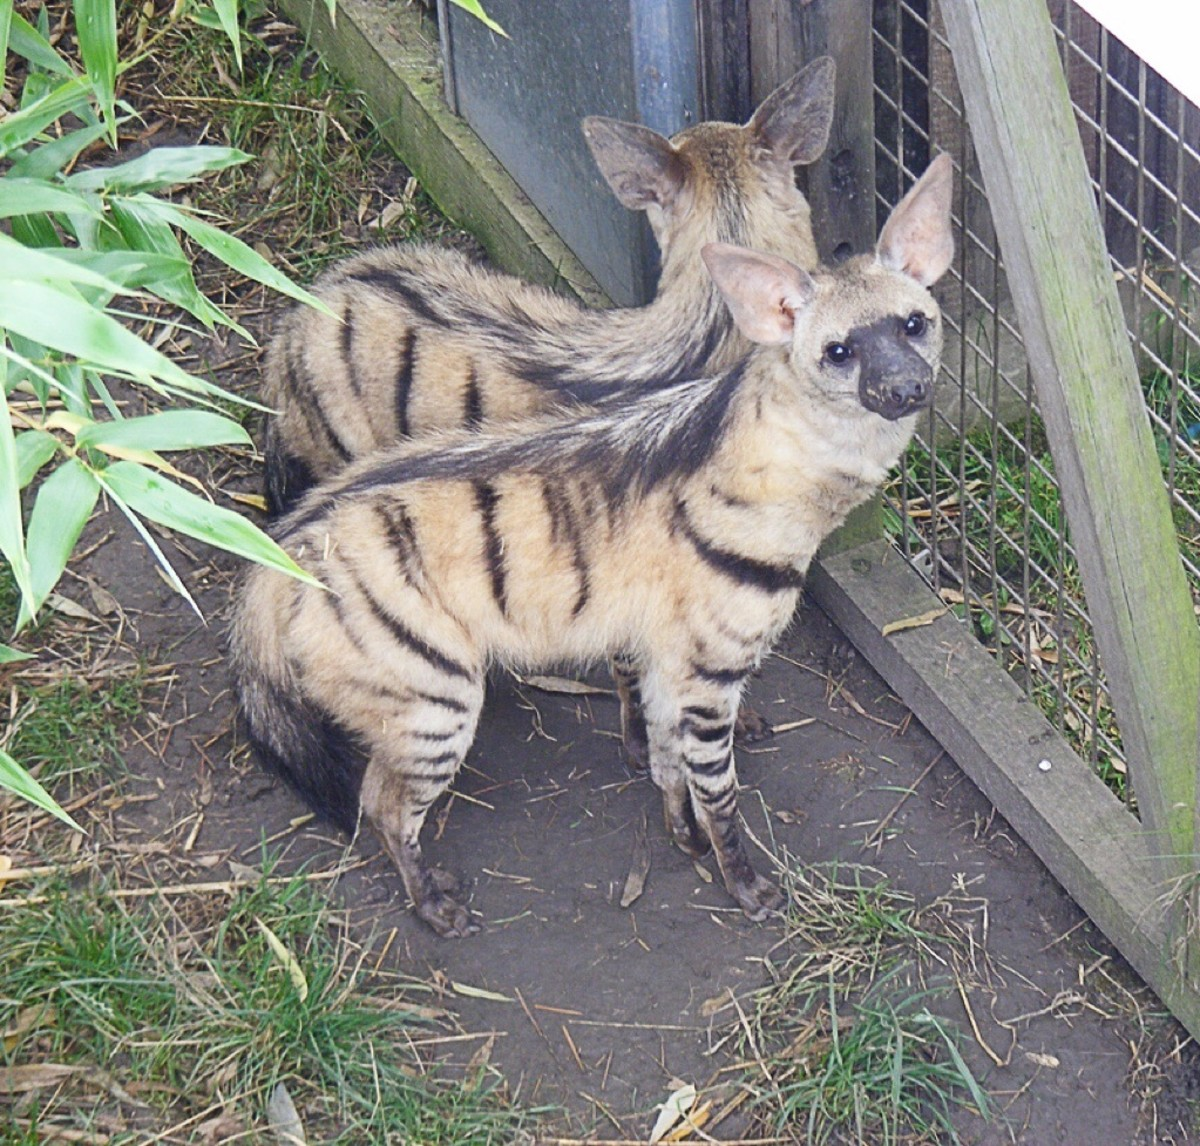 The Aardwolf: A Hyena Relative That Feeds on Termites